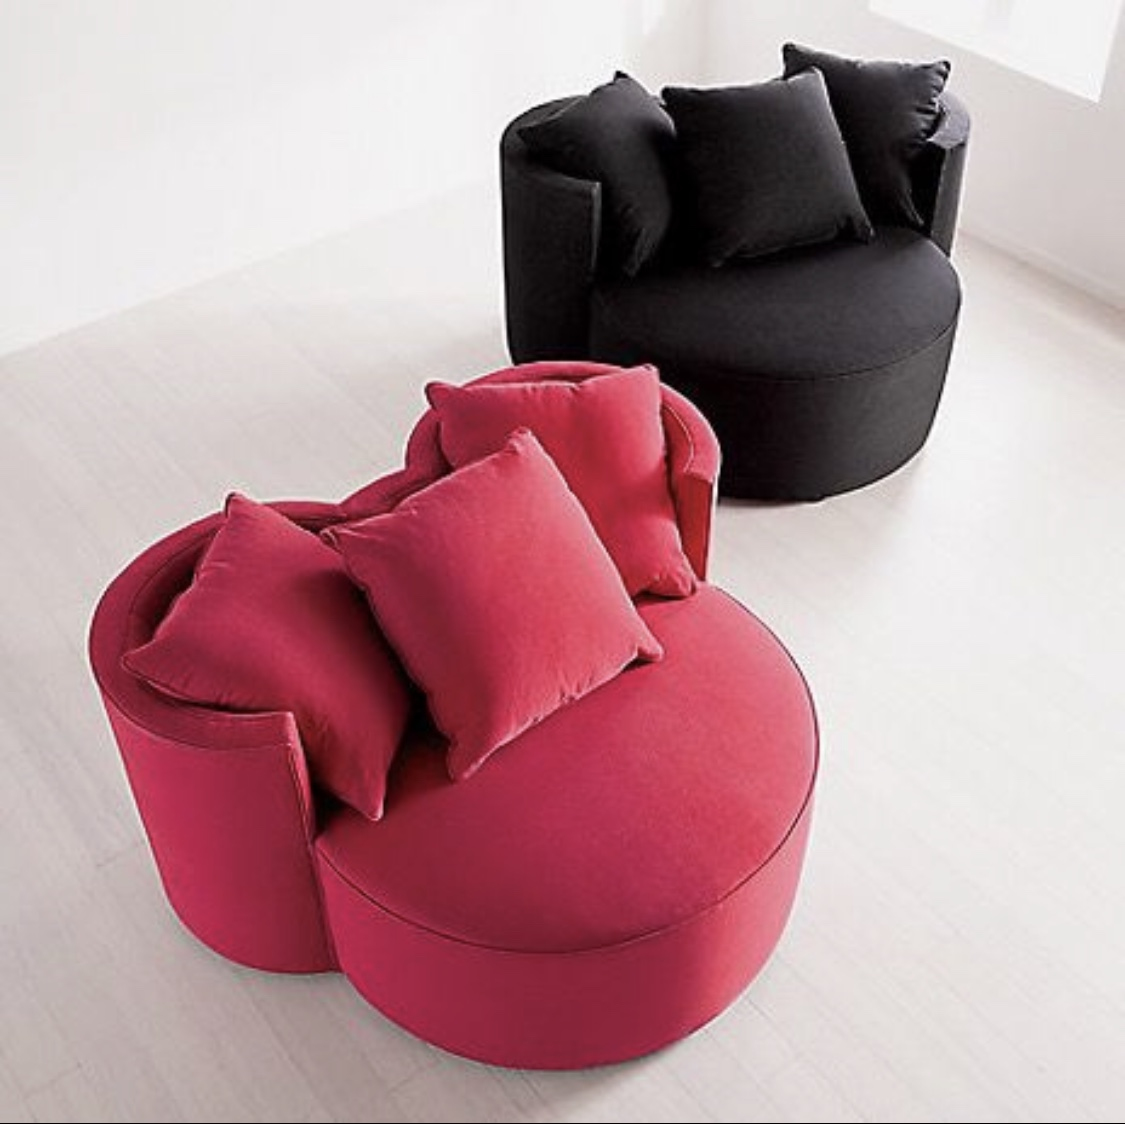 This Mickey Mouse chair is perfect for ANY Disney fan! 4